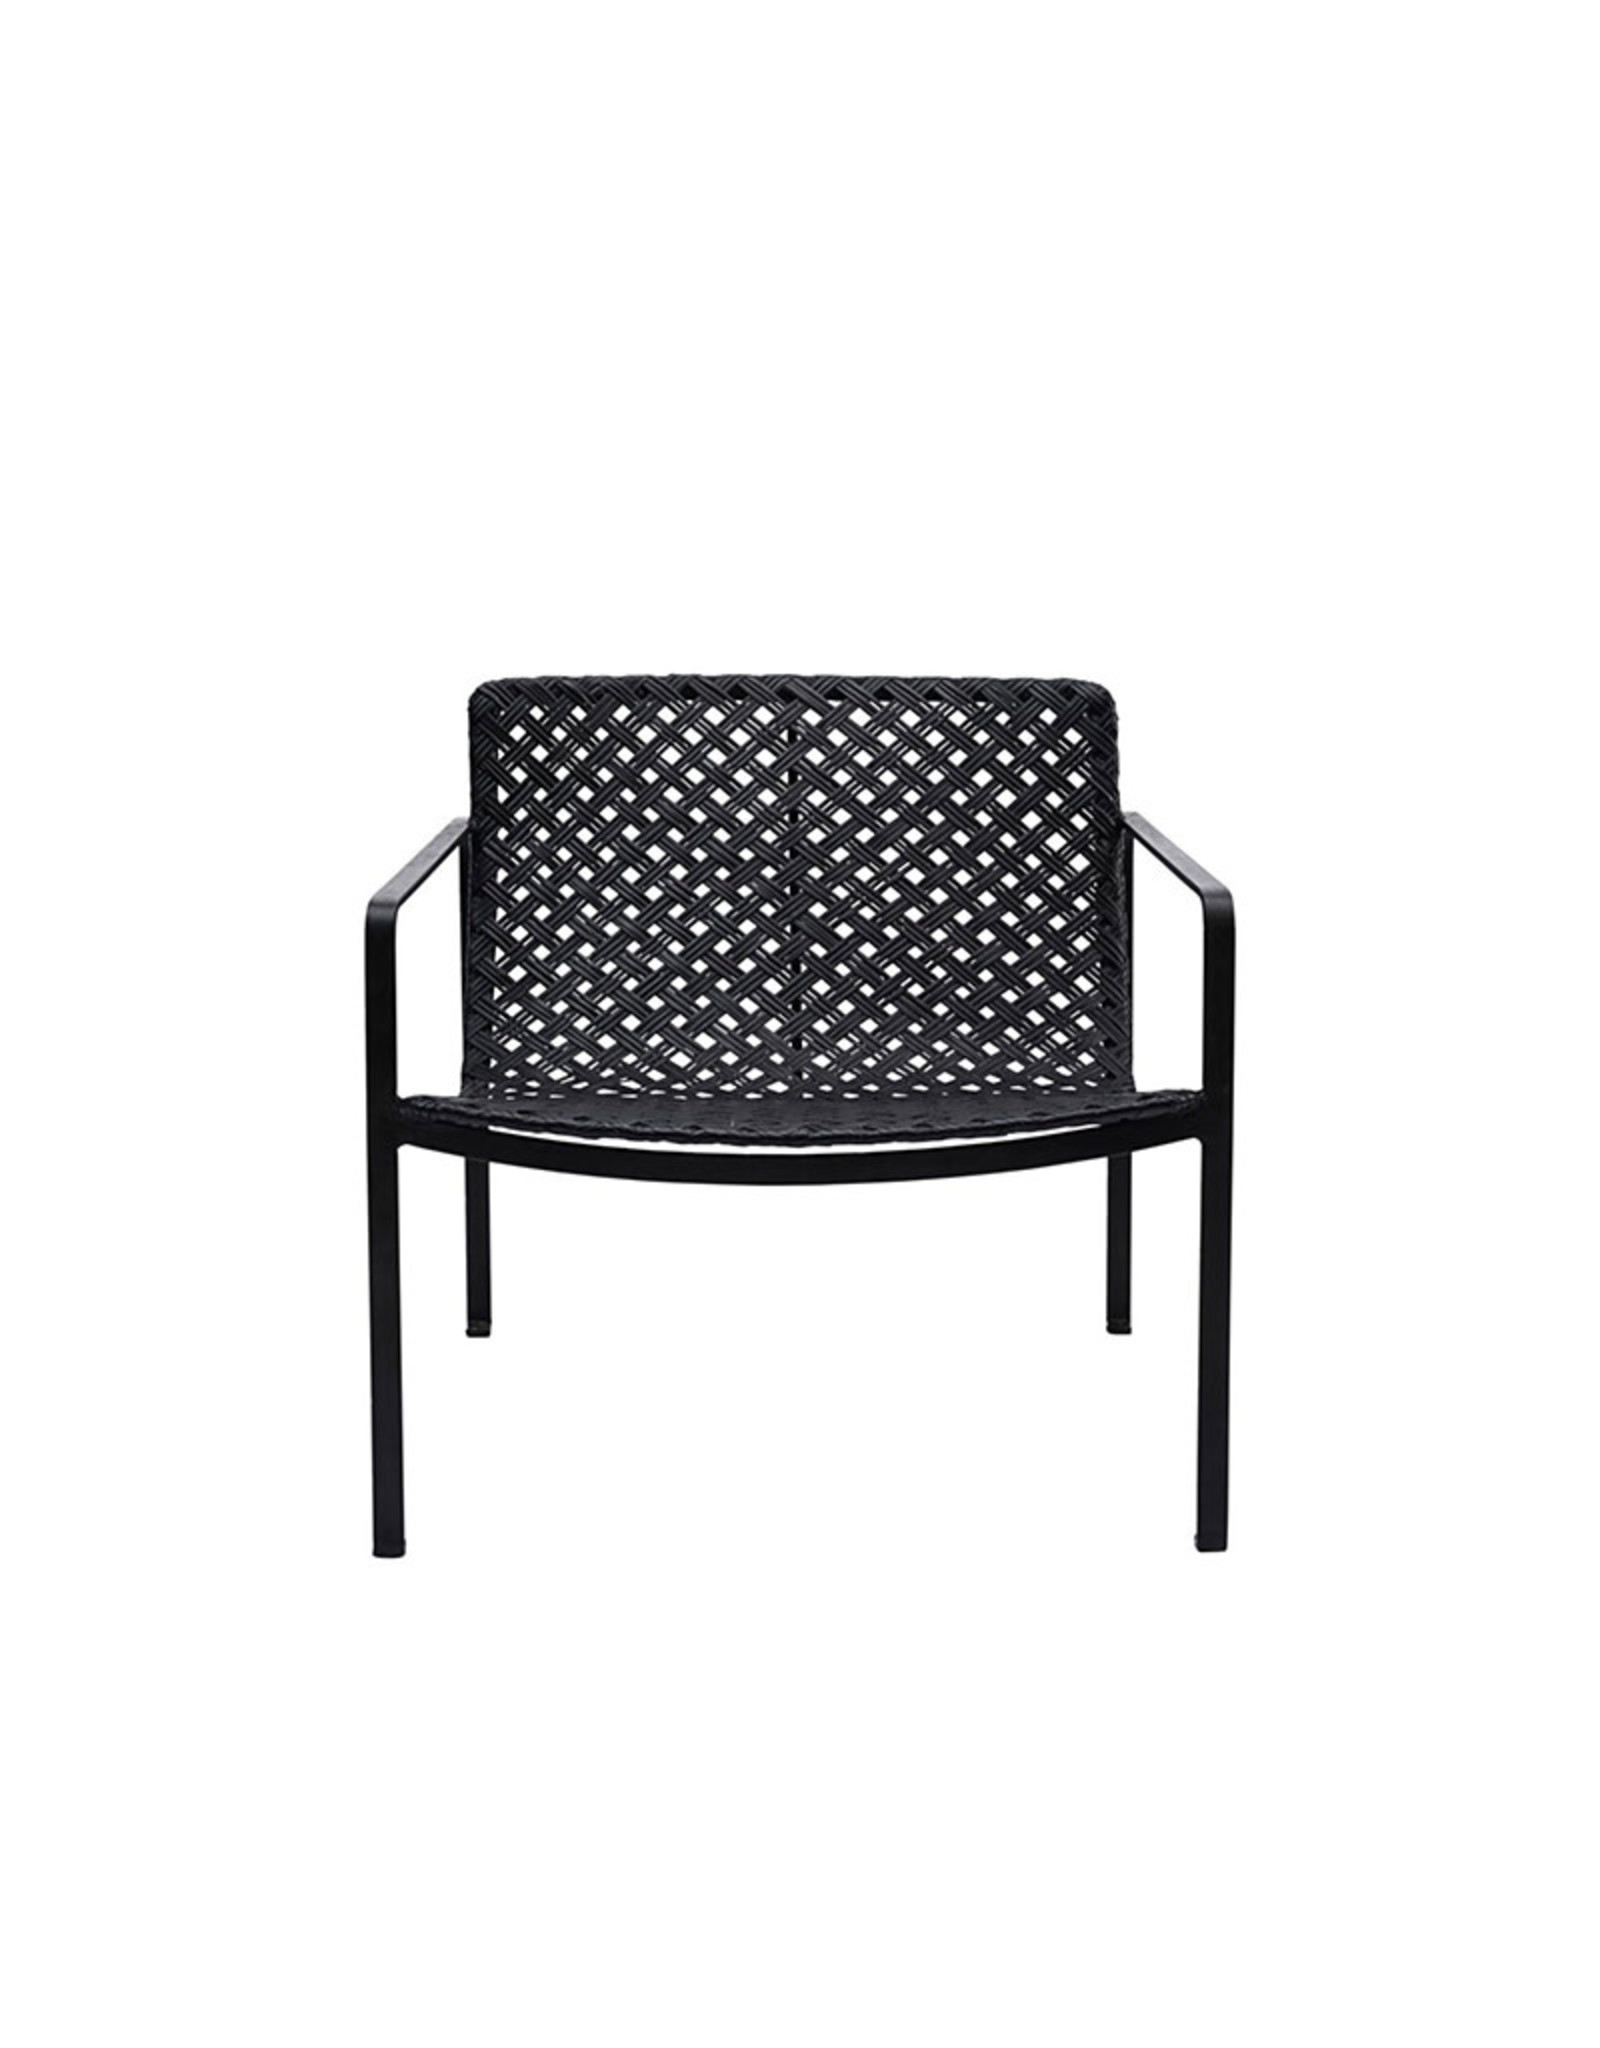 HOUSE DOCTOR HOUSE DOCTOR HABRA LOUNGE CHAIR BLACK